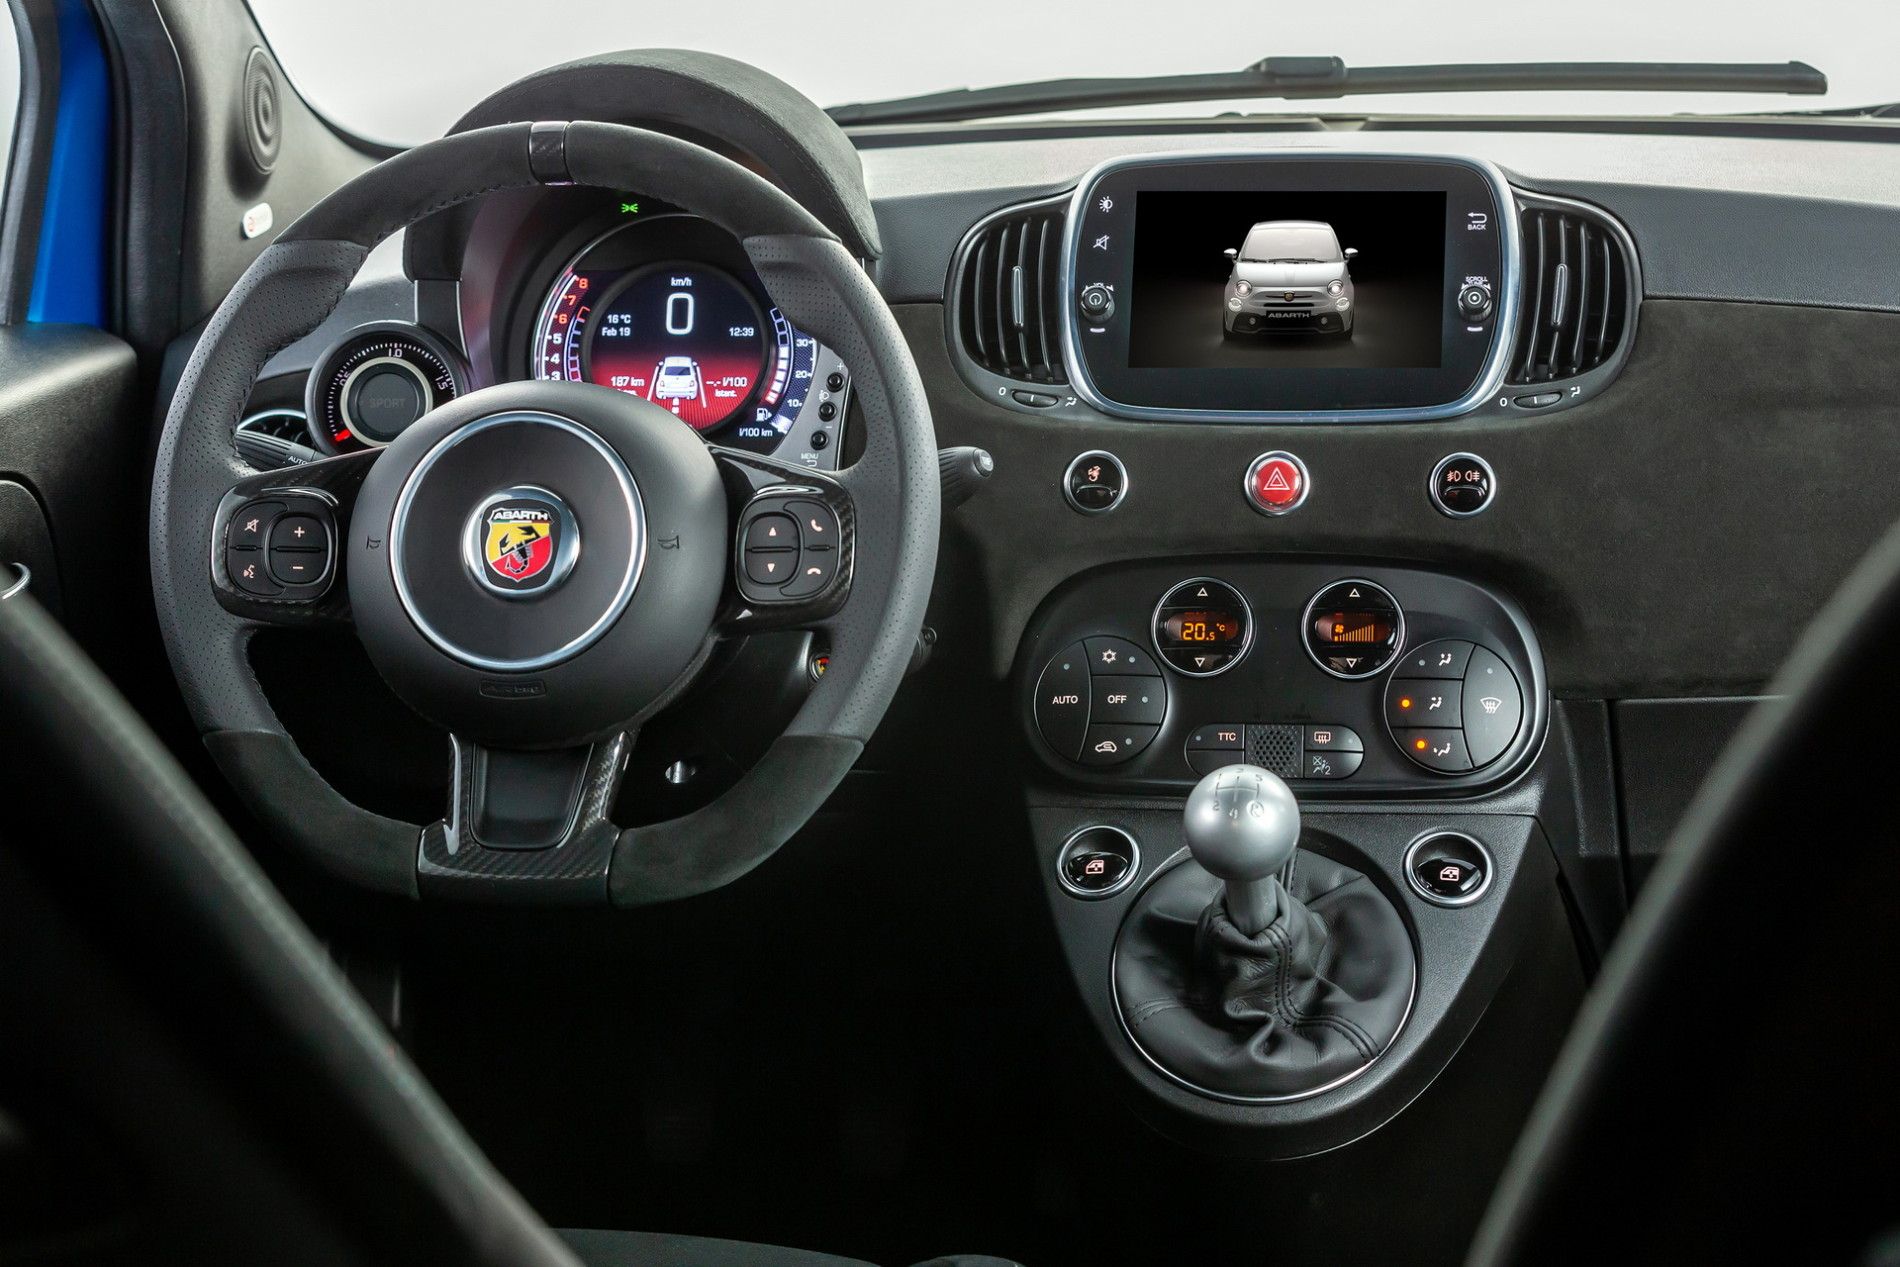 Abarth 595 facelift - Abarth 595 facelift